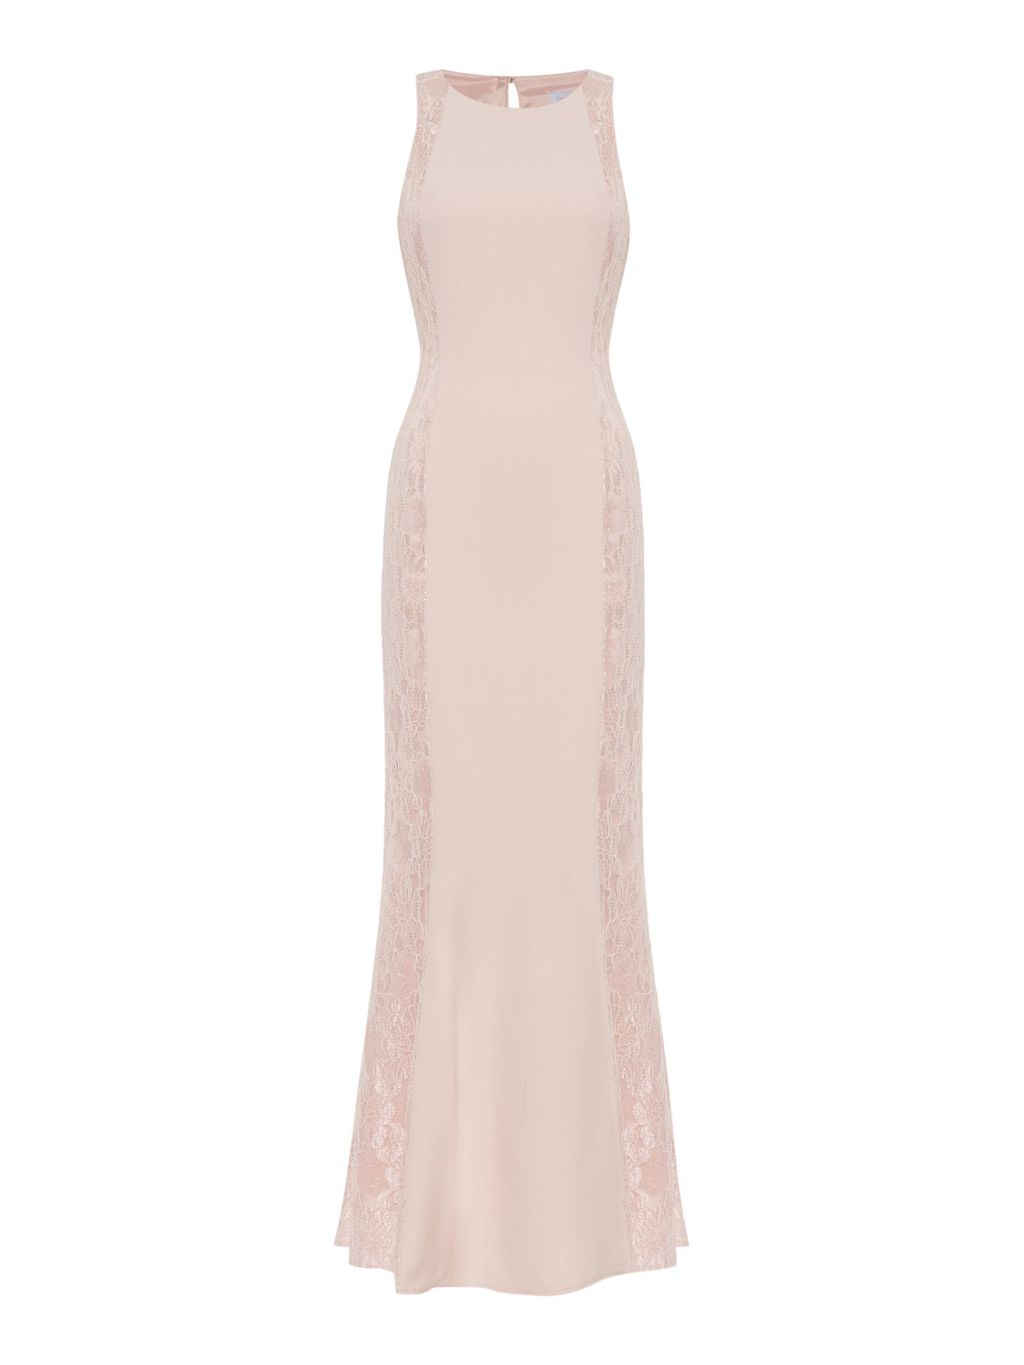 Sleeveless Gown With Lace Side Panels, Blush - style: ballgown; pattern: plain; sleeve style: sleeveless; predominant colour: nude; occasions: evening; length: floor length; fit: body skimming; fibres: polyester/polyamide - stretch; neckline: crew; sleeve length: sleeveless; pattern type: fabric; texture group: jersey - stretchy/drapey; season: s/s 2016